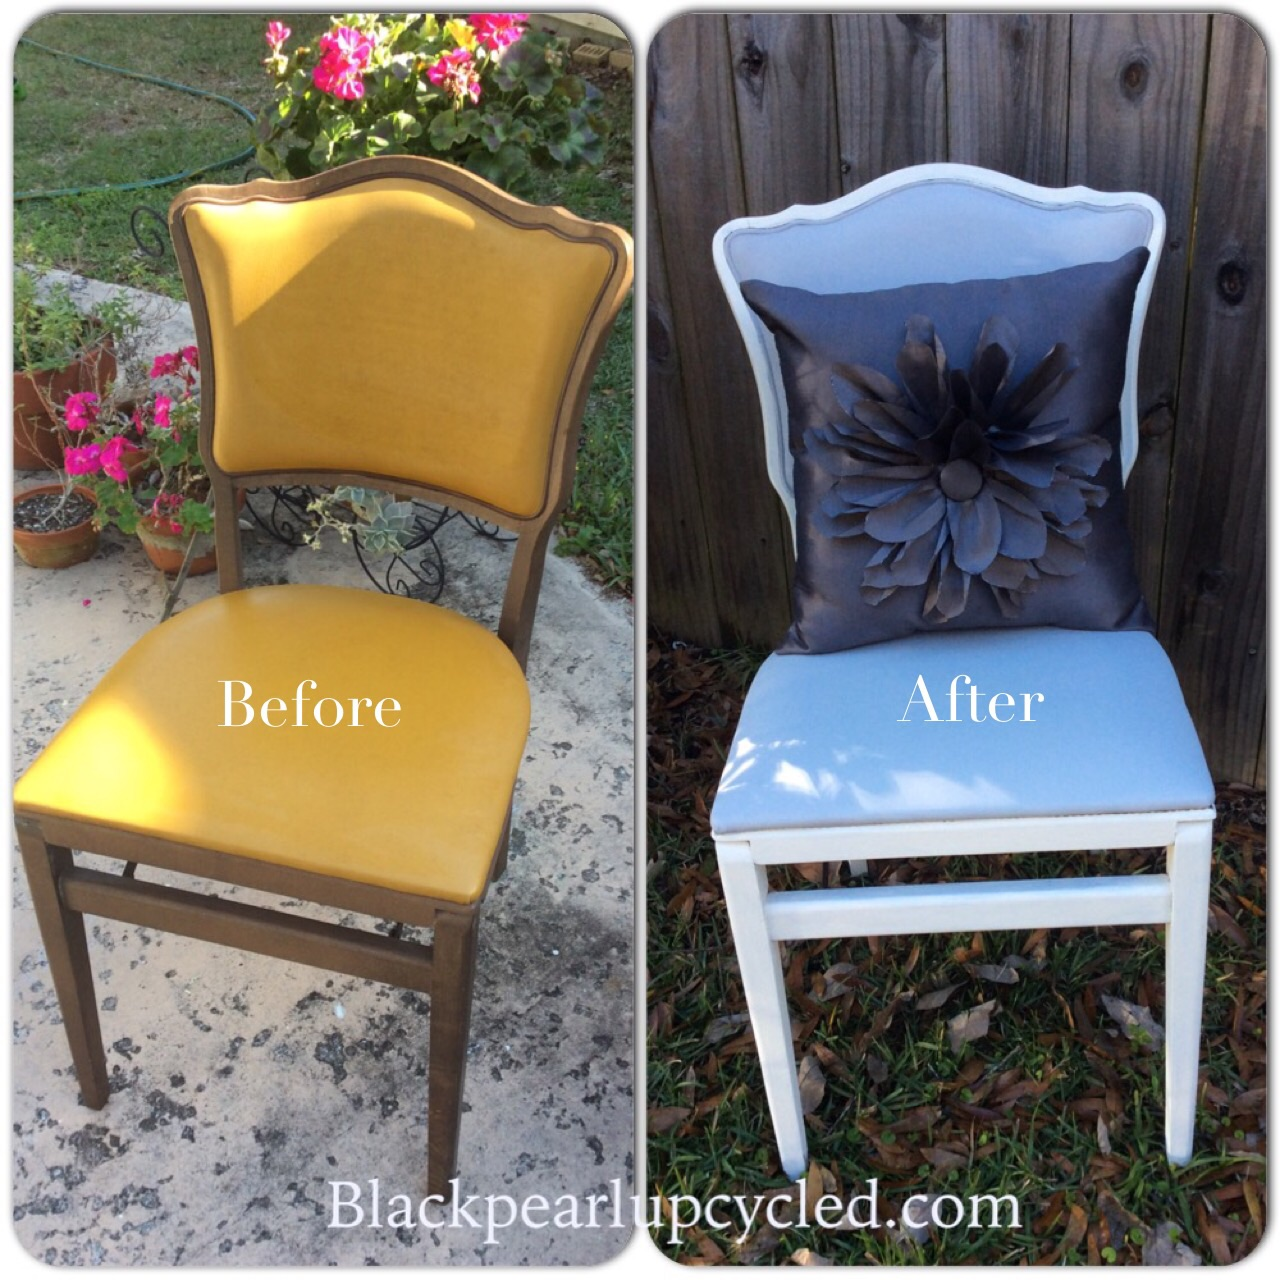 Black Pearl Upcycled